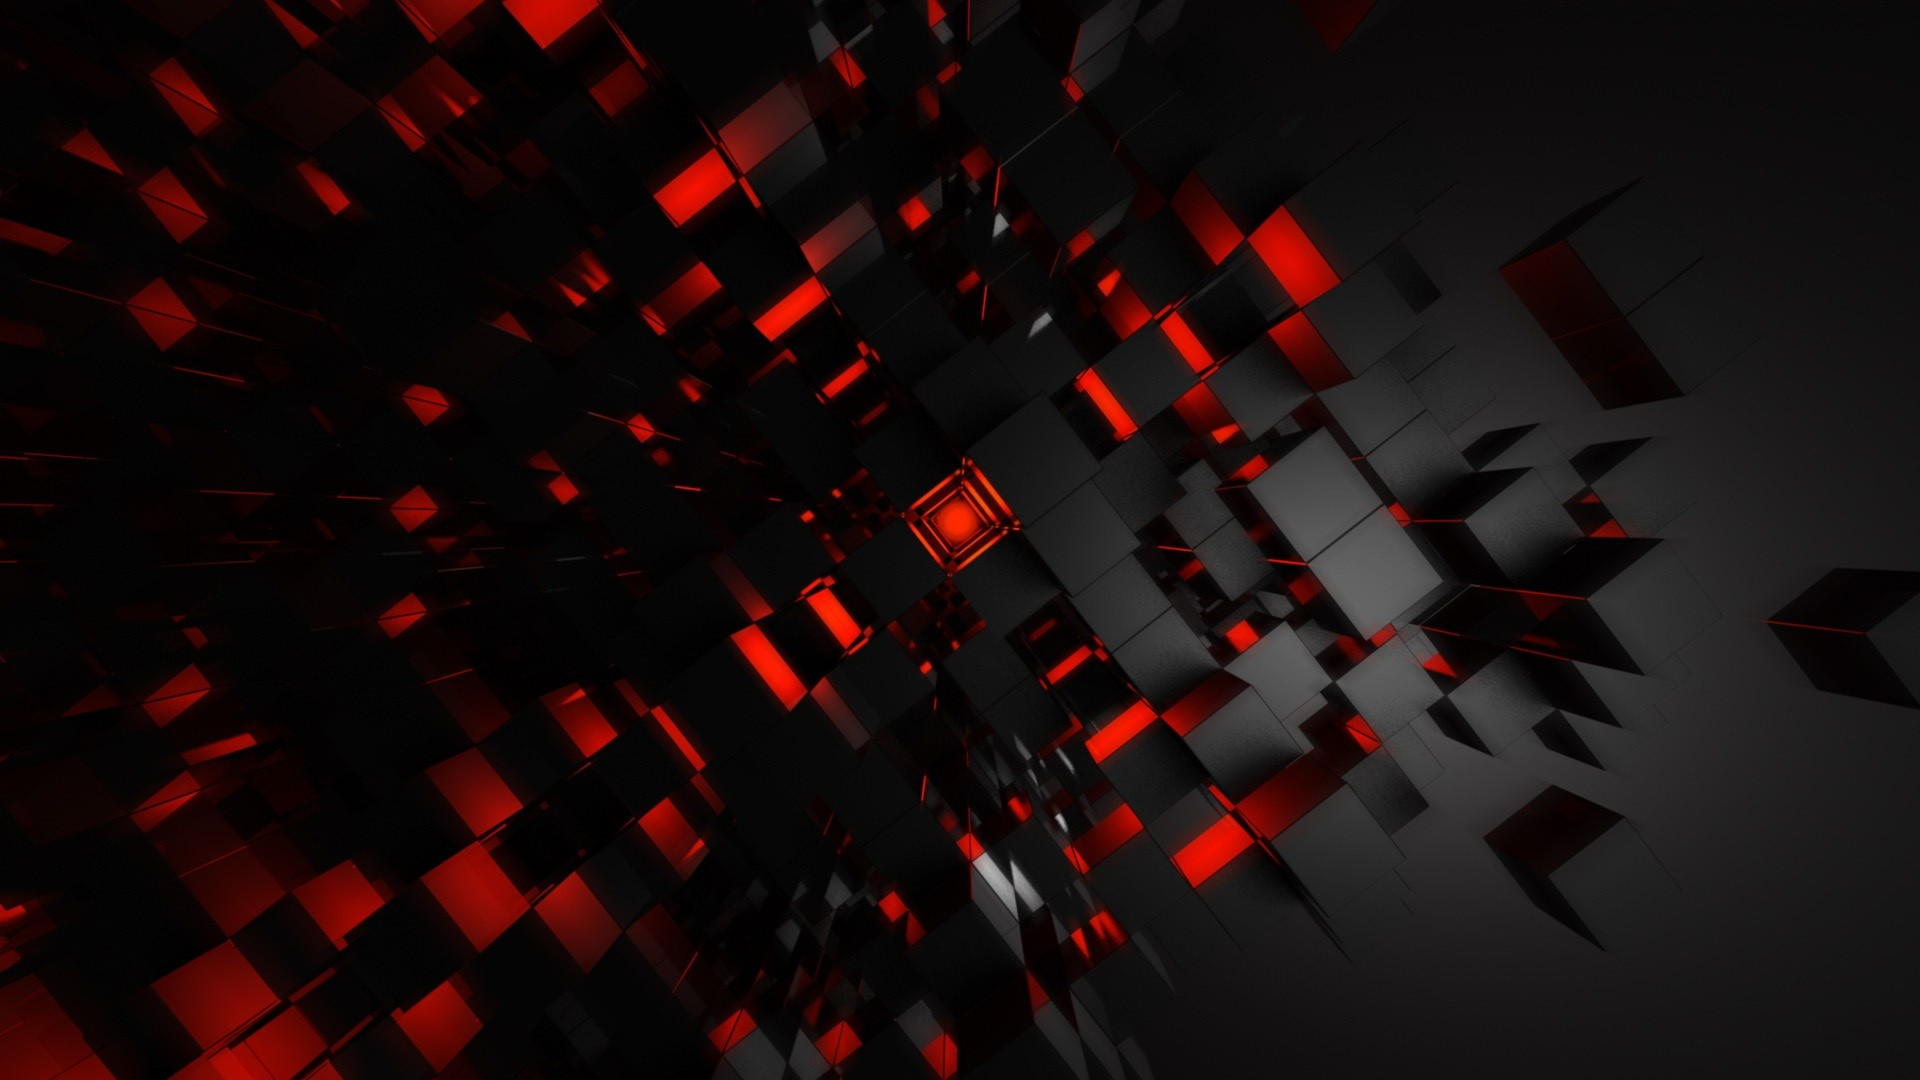 Abstract Backgrounds HD HD Desktop Wallpapers Cool Images Amazing 1920x1080